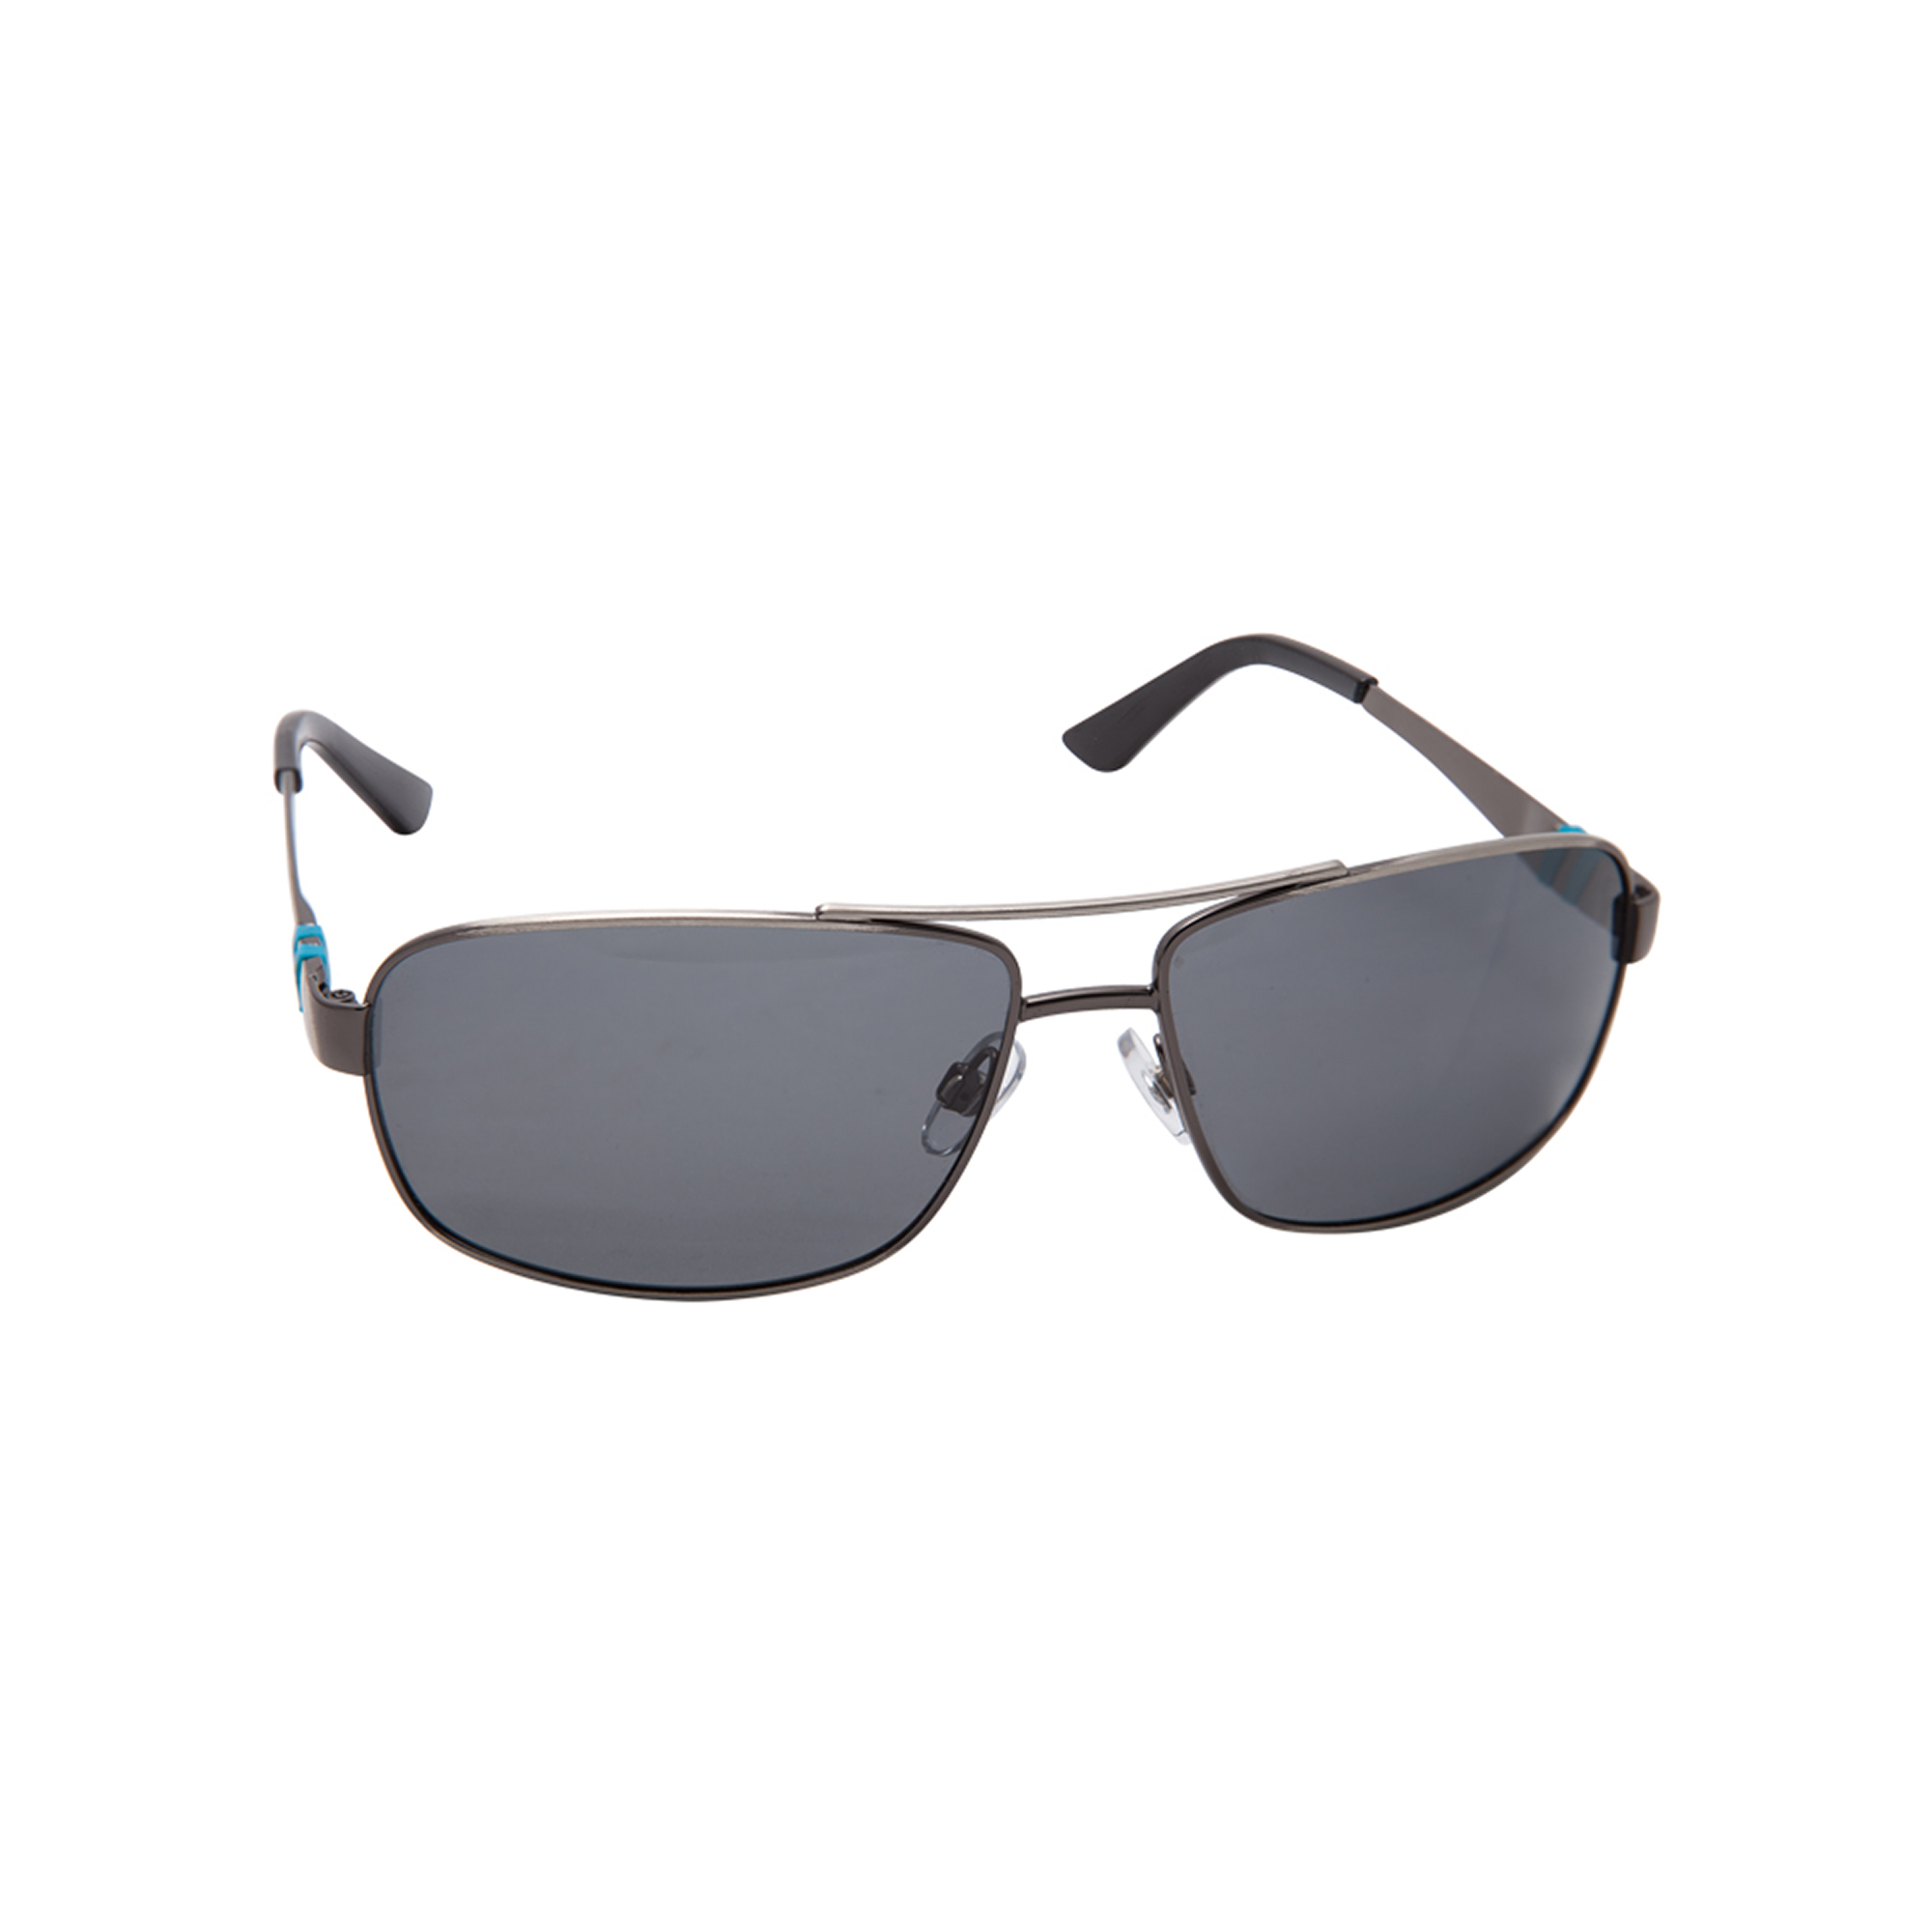 Cool looking and protective, these aviator and sport style sunglasses are comfortable to wear and they are UV 400 certified to protect your eyes. Dark grey polarized lenses subtly match the gun metal style frames and the side frame is enhanced with stylish Atlas Copco blue details in rubber.